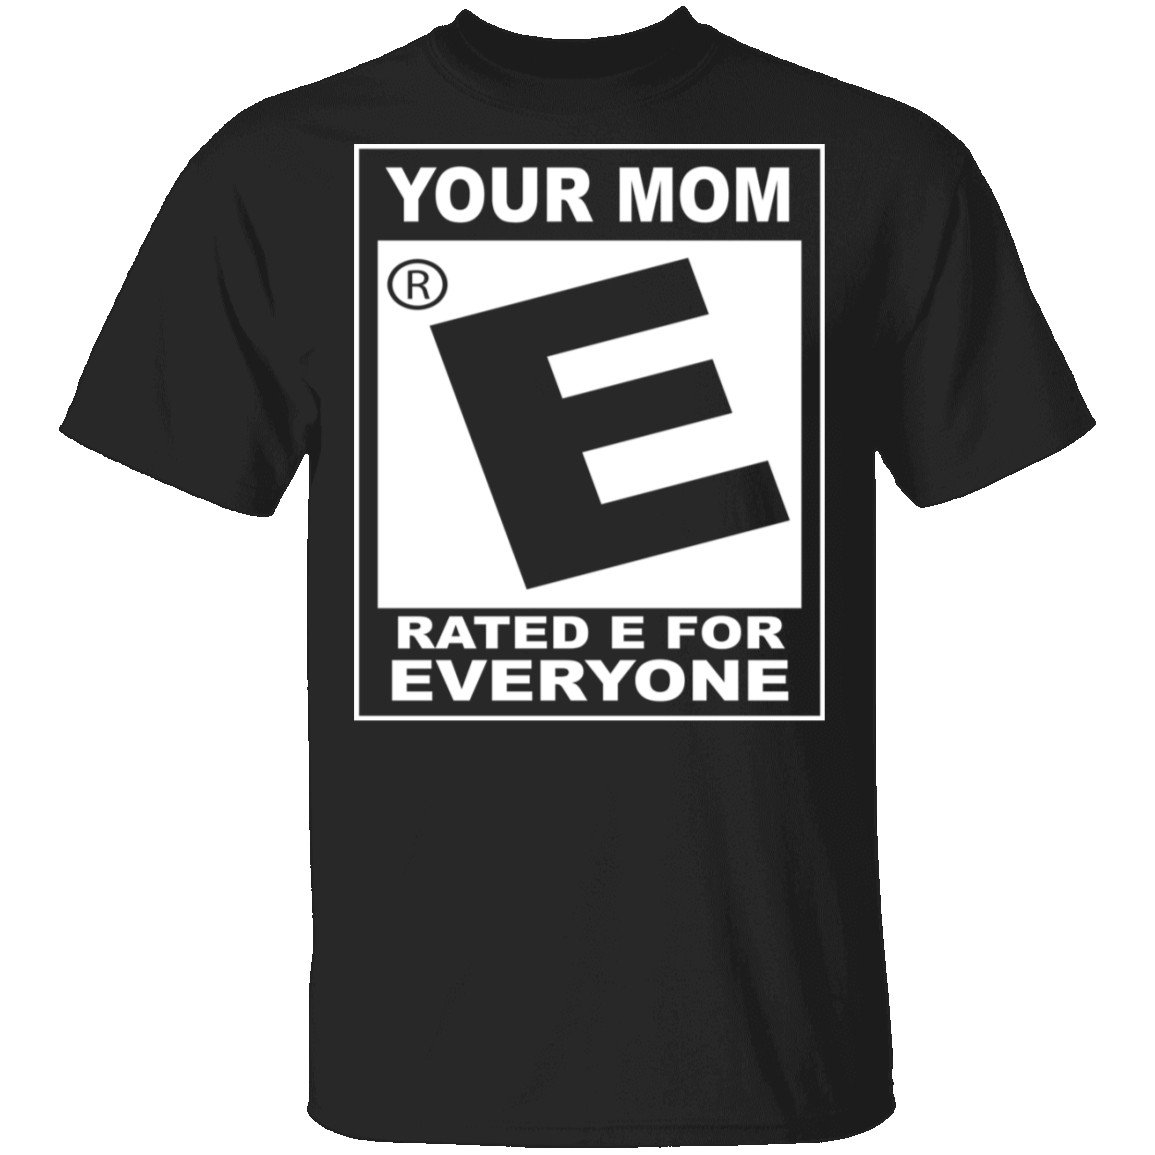 Image of Your Mom T-Shirt